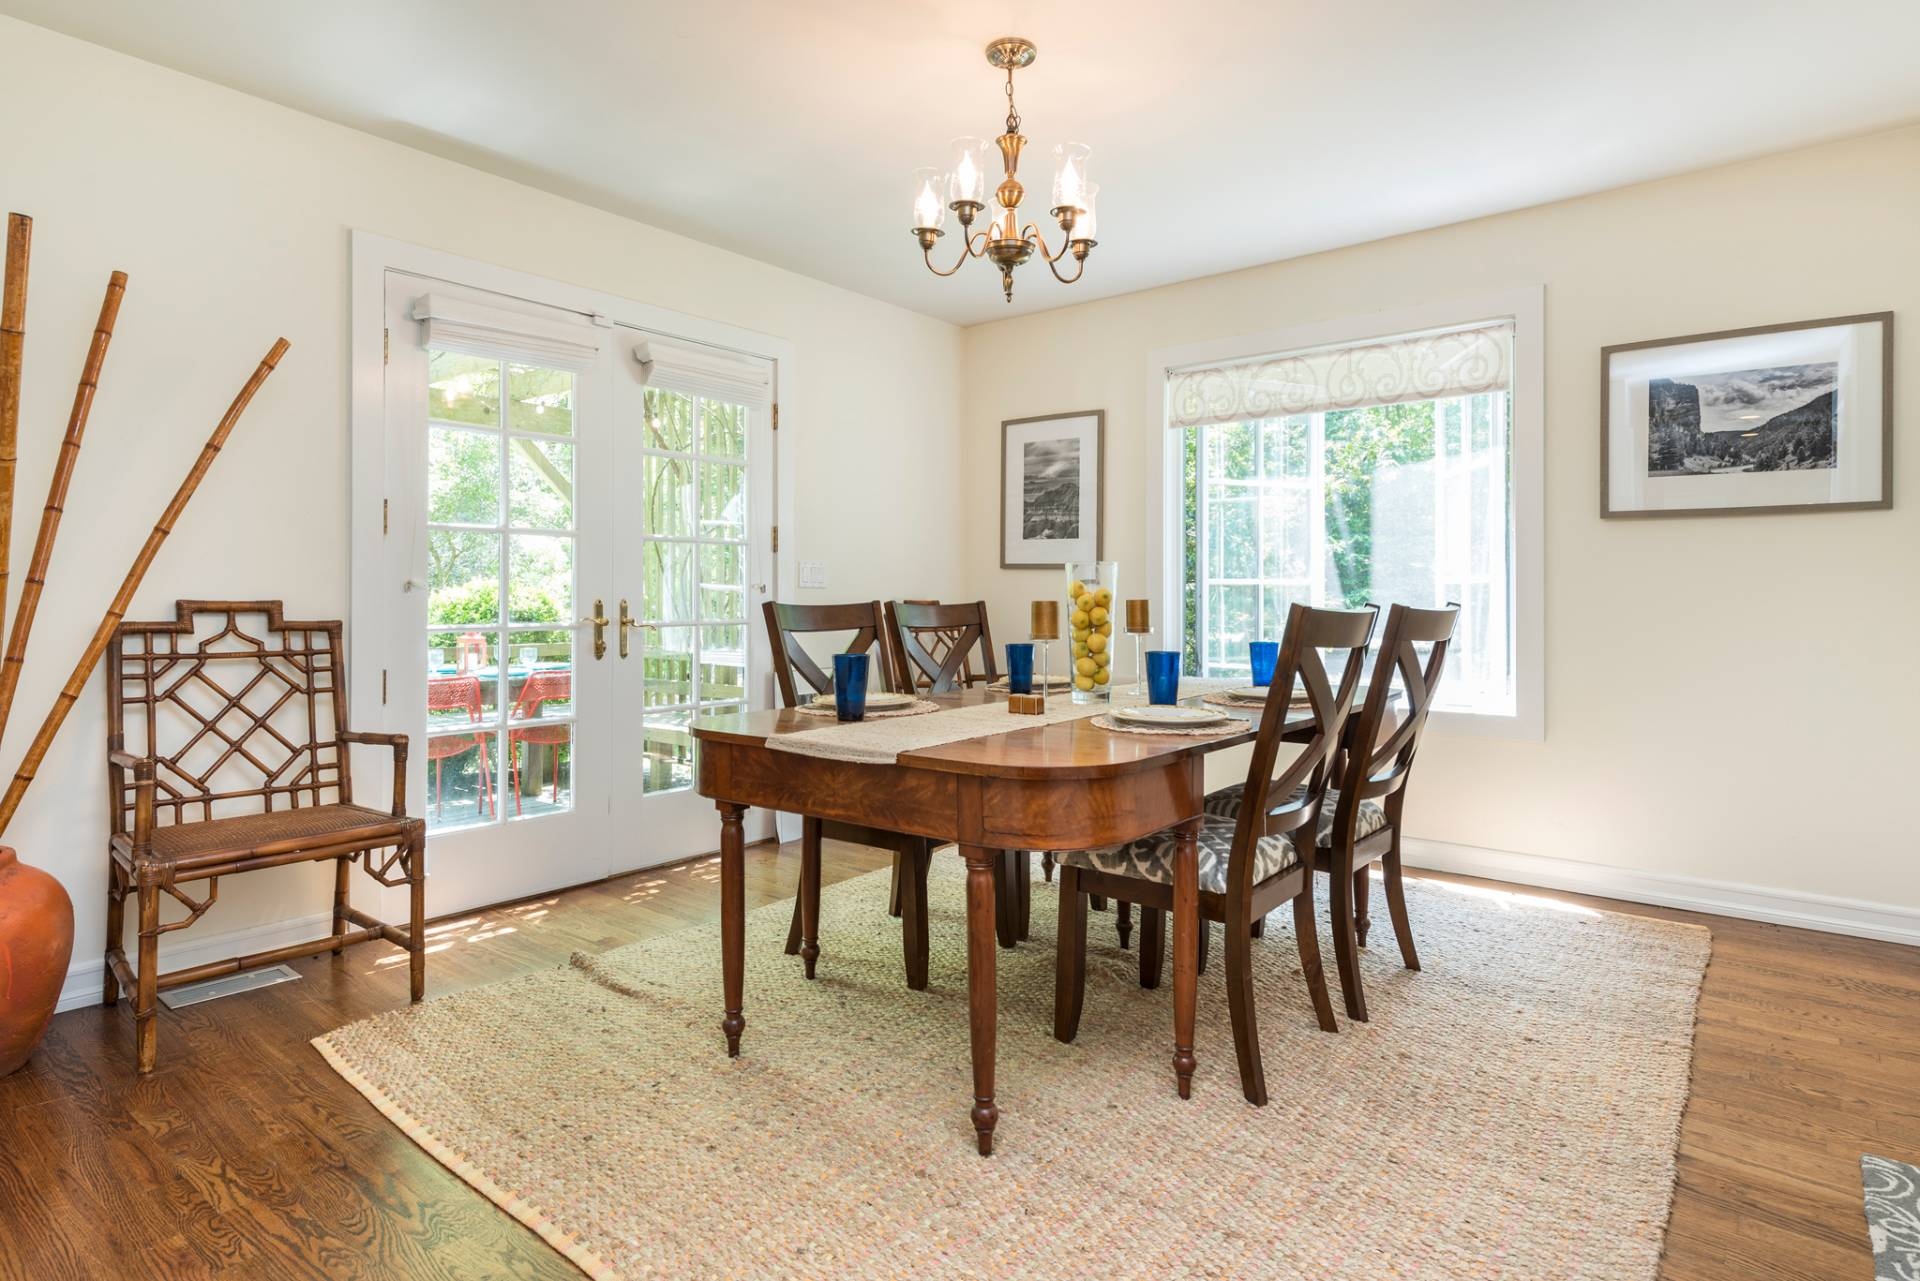 Additional photo for property listing at 3 Bedroom Sag Harbor Home With Cul-De-Sac 201 Harbor Watch Court,  Sag Harbor, New York